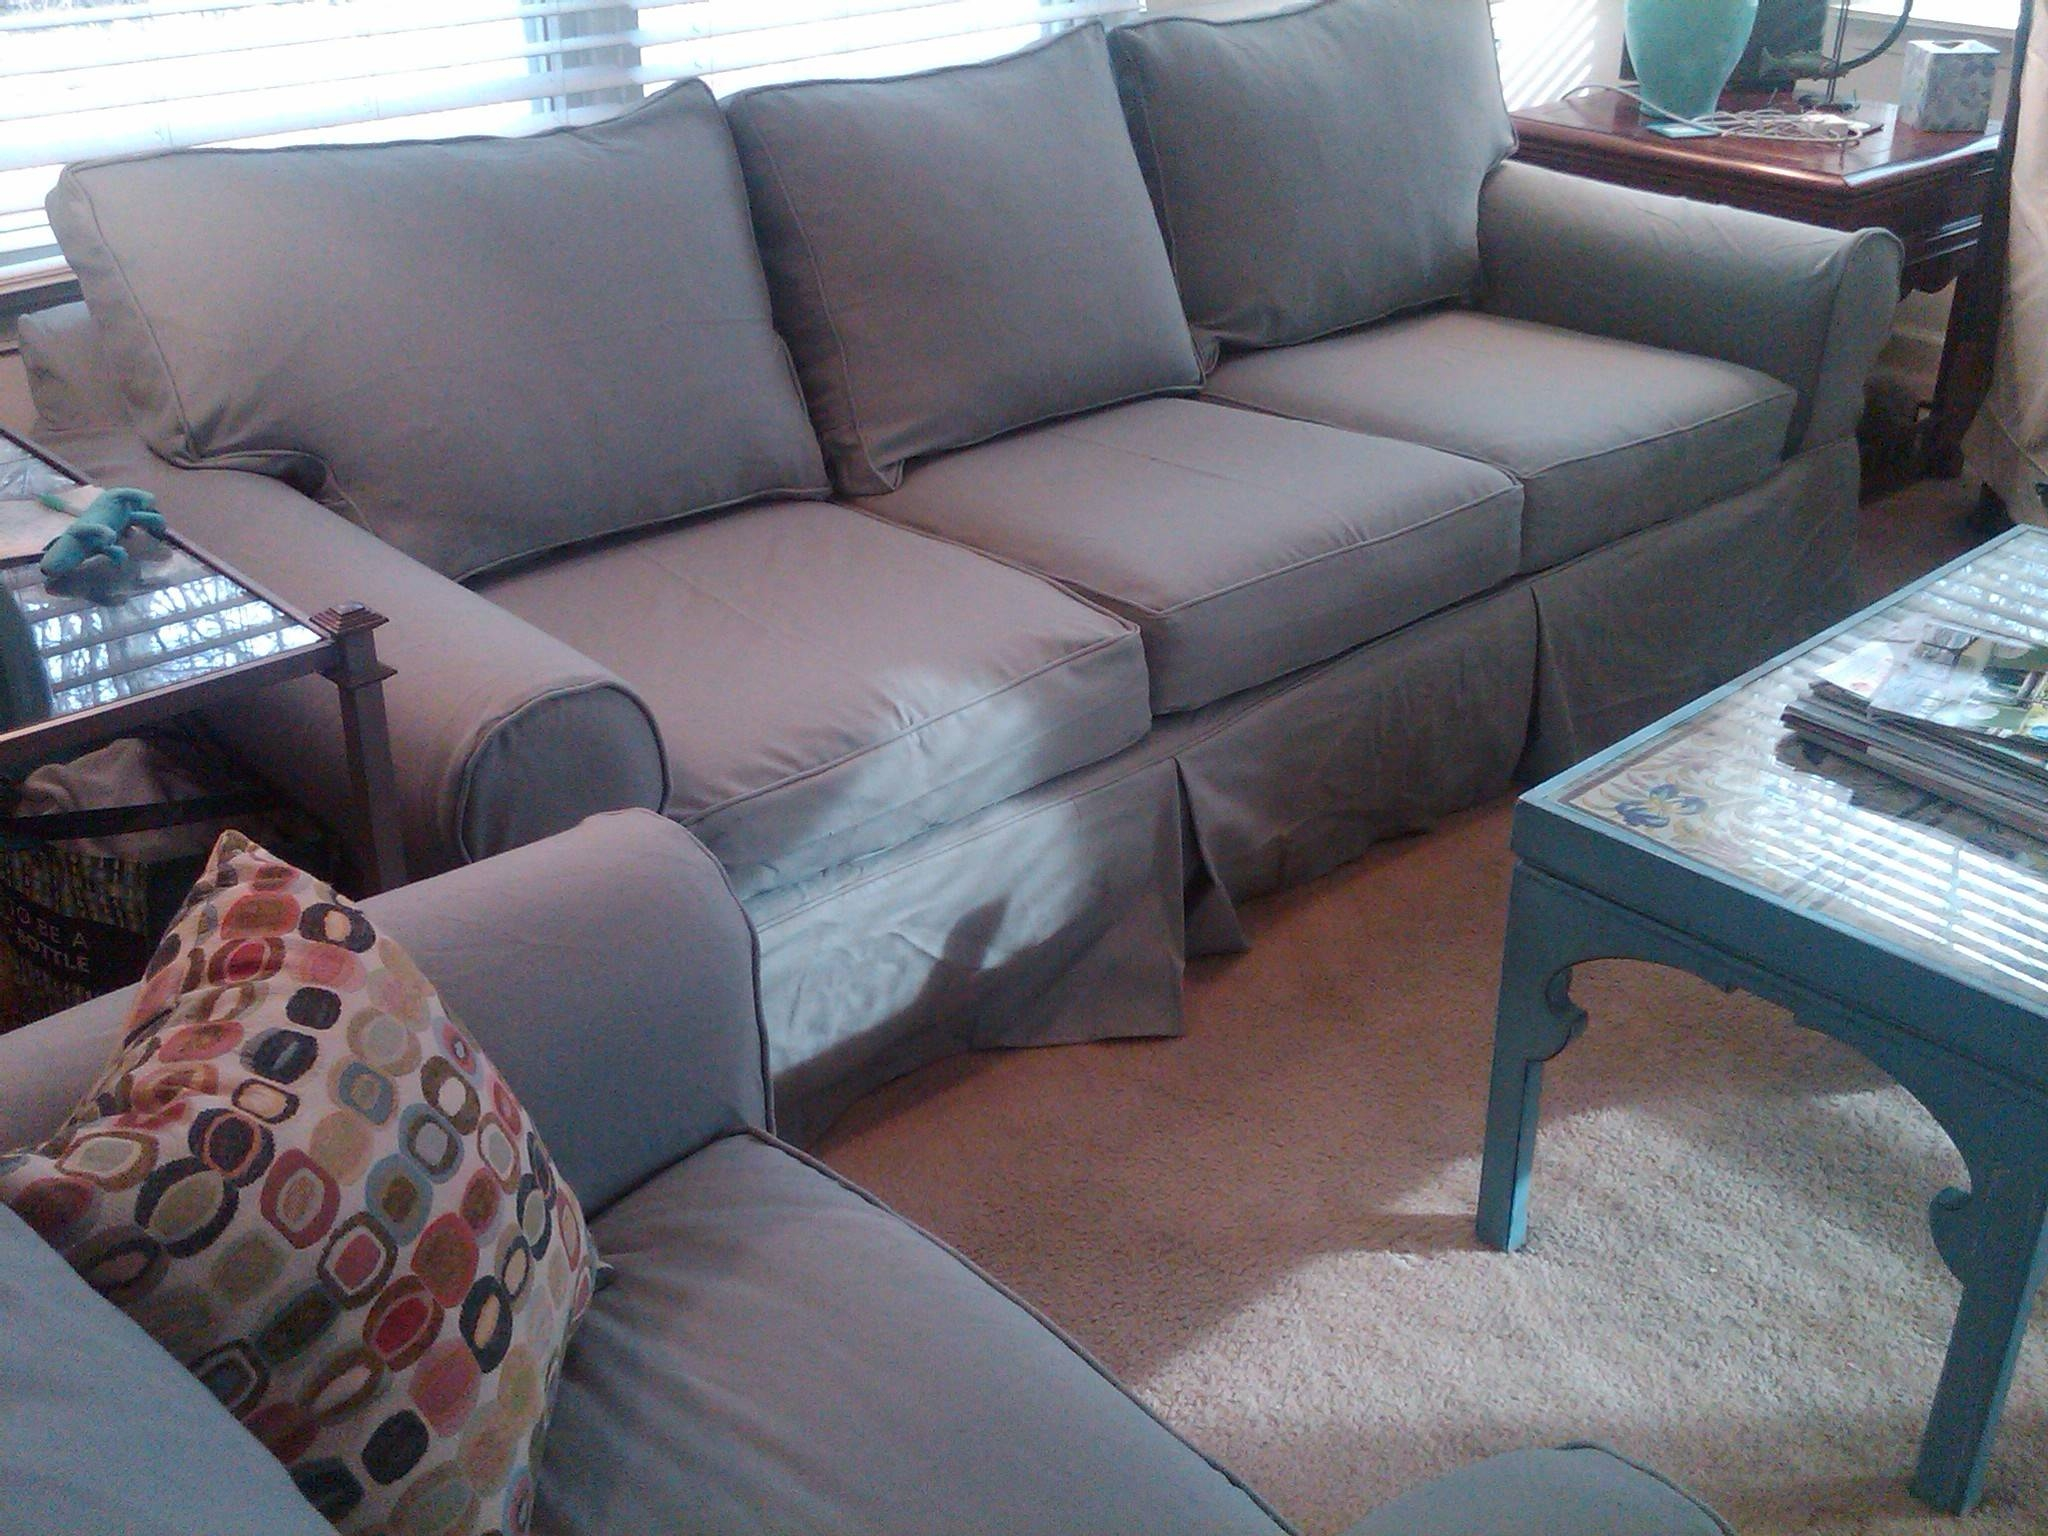 Replacement Slipcover Outlet- Replacement Slipcovers For Famous for Denim Sofa Slipcovers (Image 8 of 15)